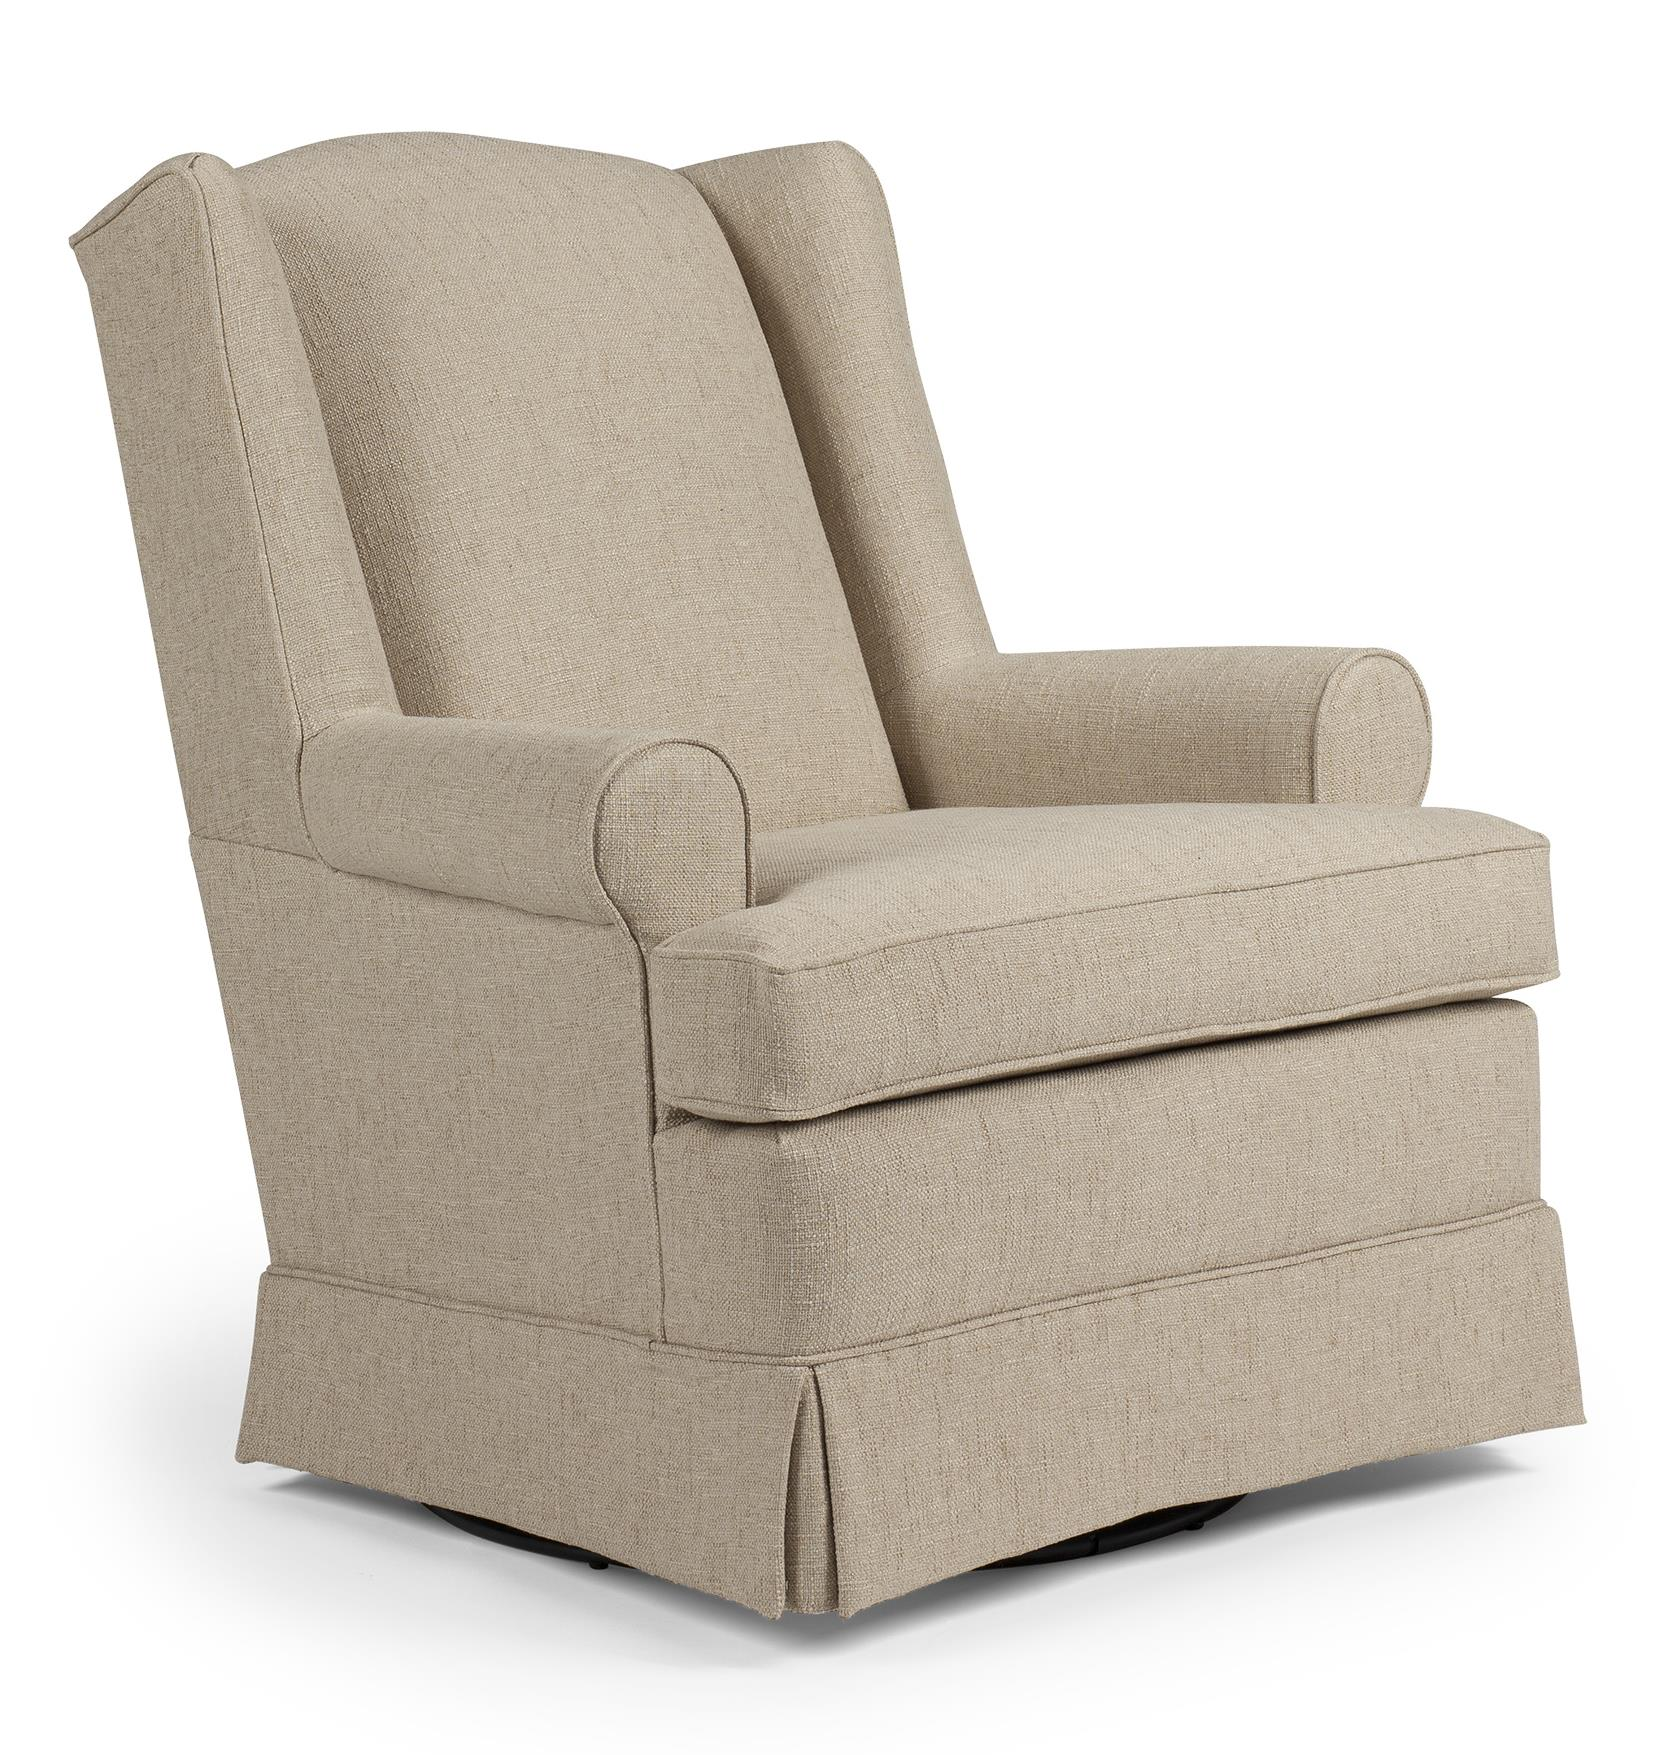 Best Home Furnishings Chairs - Swivel Glide Roni Swivel Glider Chair - Item Number: 7197-28229